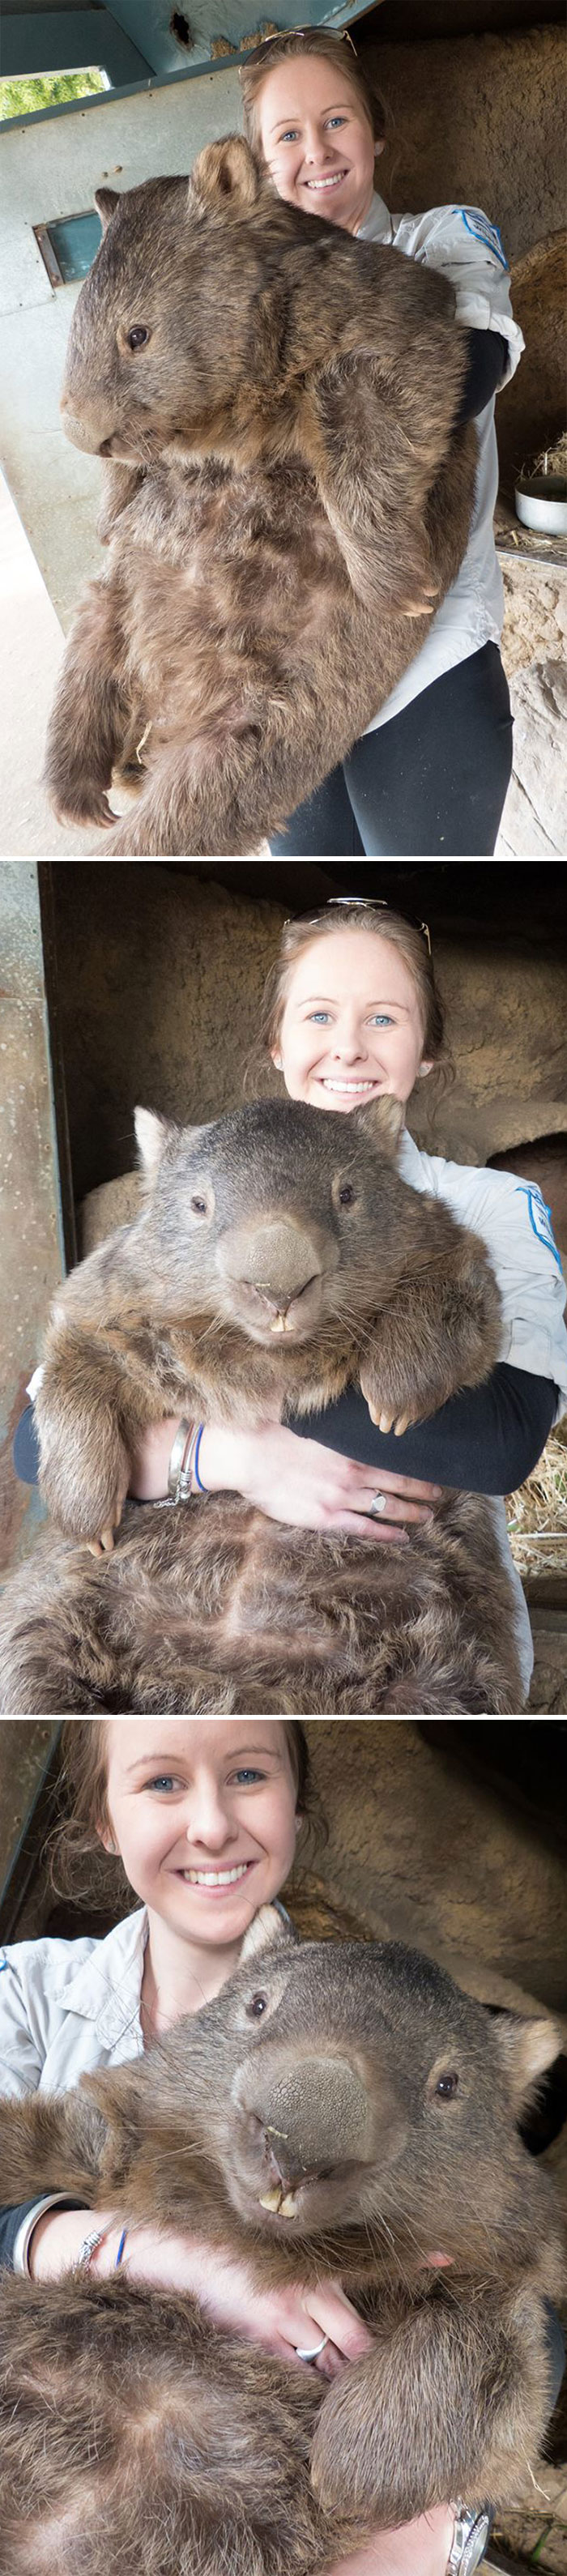 This Wombat, Human For Scale